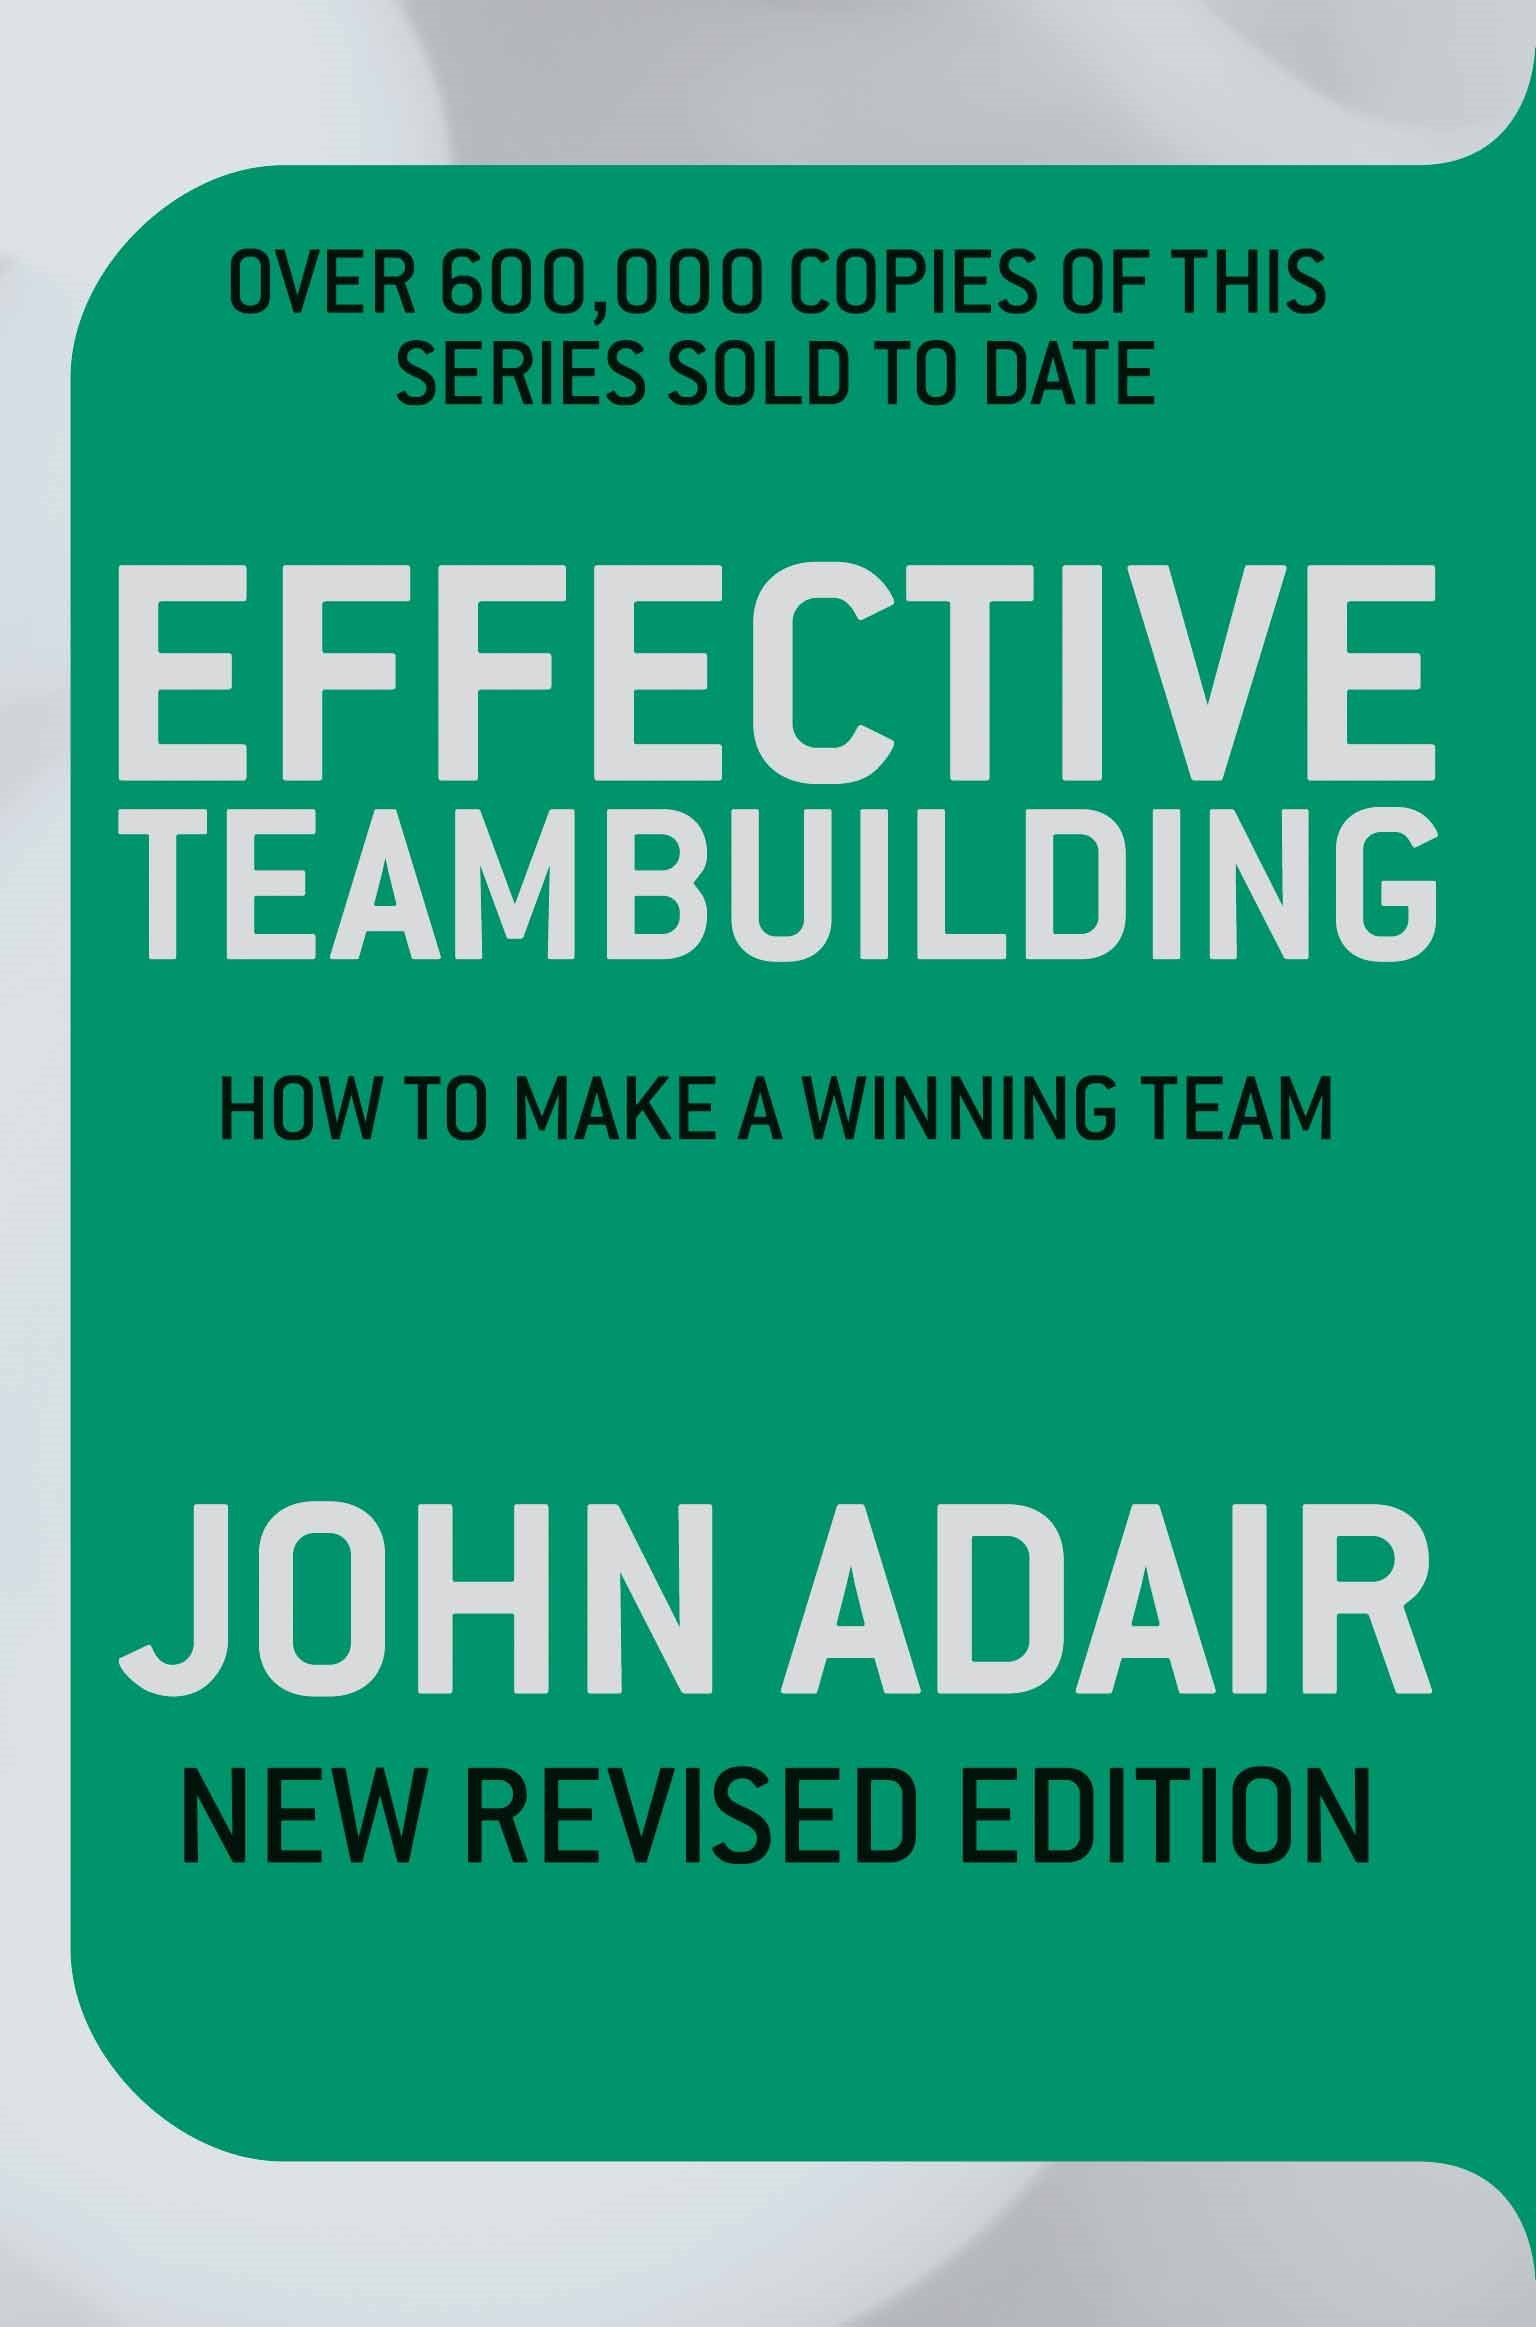 Effective Teambuilding REVISED ED david lahey predicting success evidence based strategies to hire the right people and build the best team